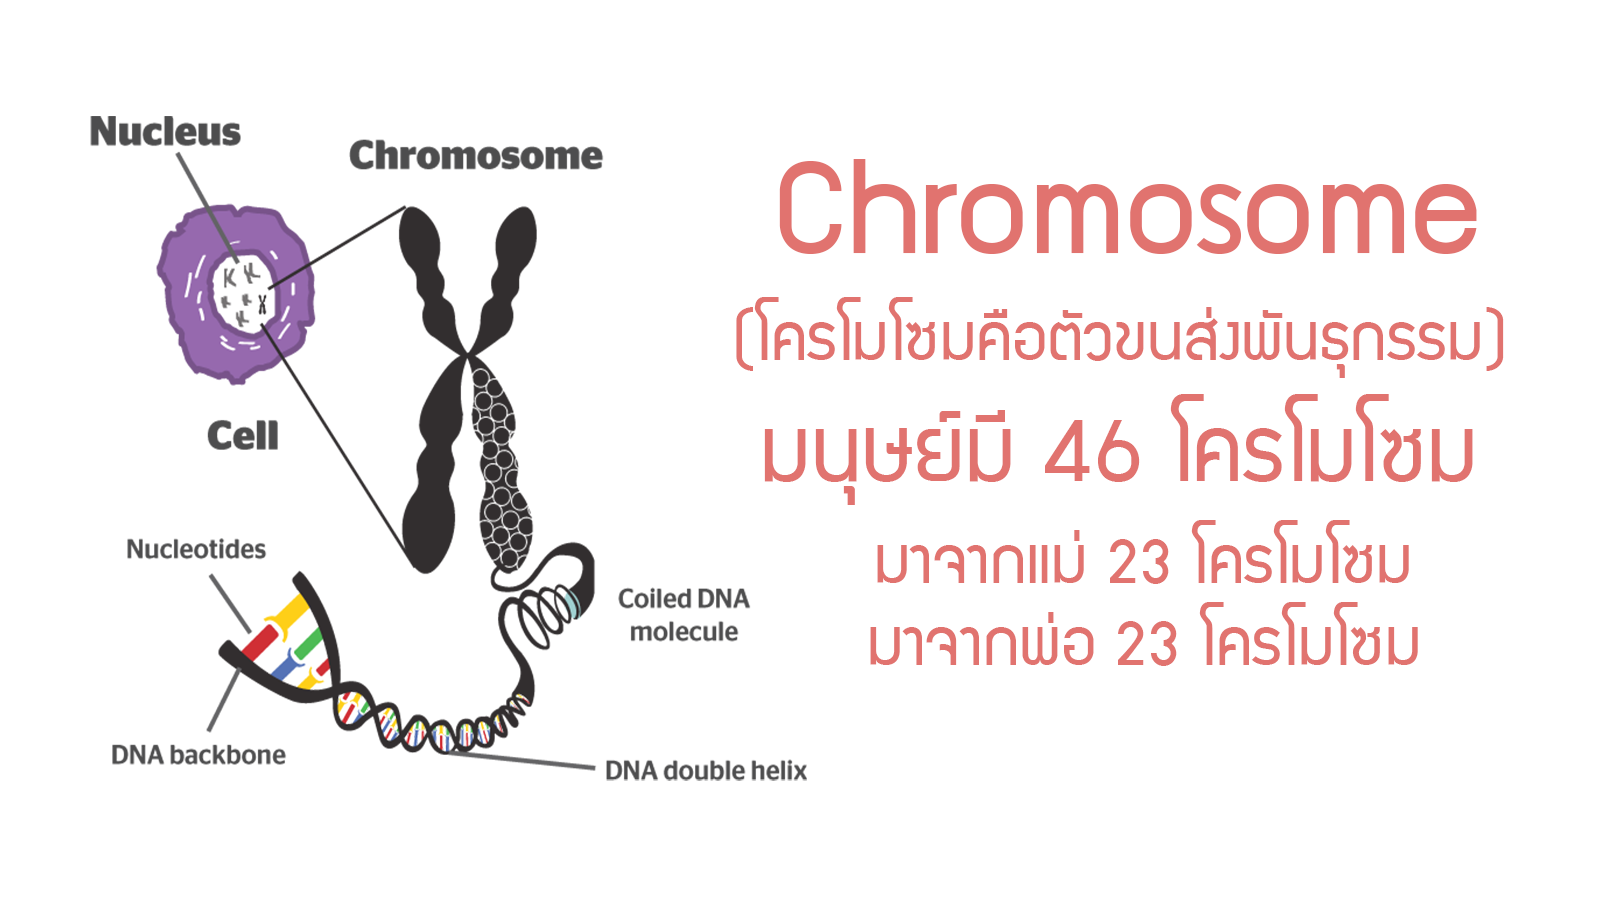 Physiology Reproductive chromosome